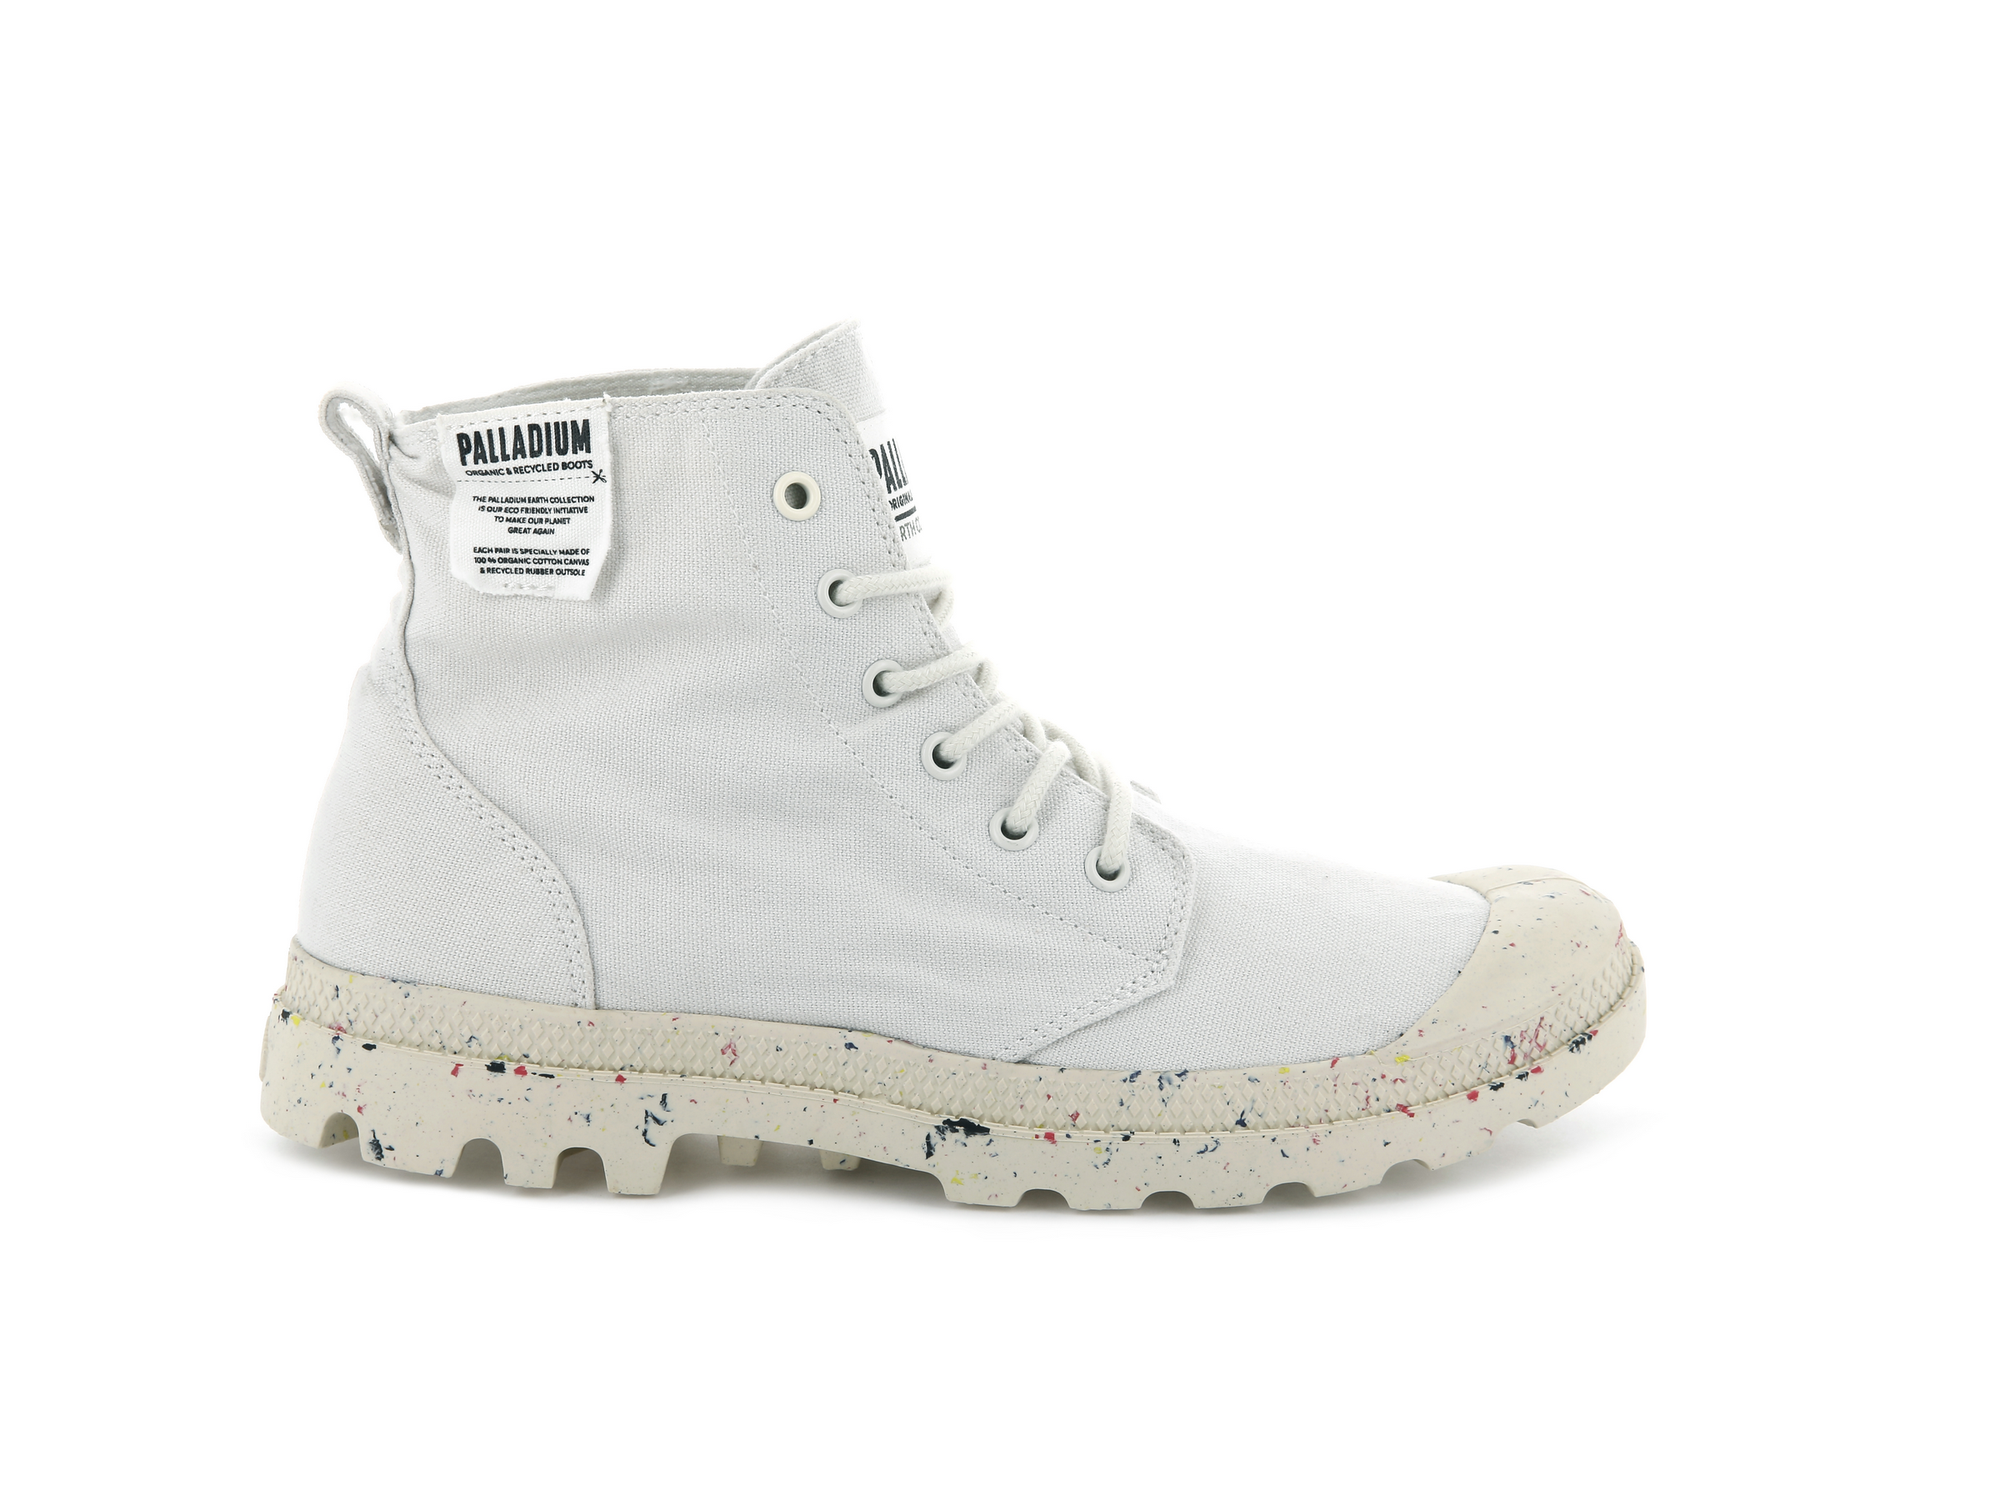 Palladium pampa hi organic boots - £75 - Fashion forward boots that are environmentally friendly at the same time. These boots help preserve the environment with their upper made of 100% organic cotton and lacetips made from bio-degradable plastic. The cork-laminated sock liner adds an extra level of comfort